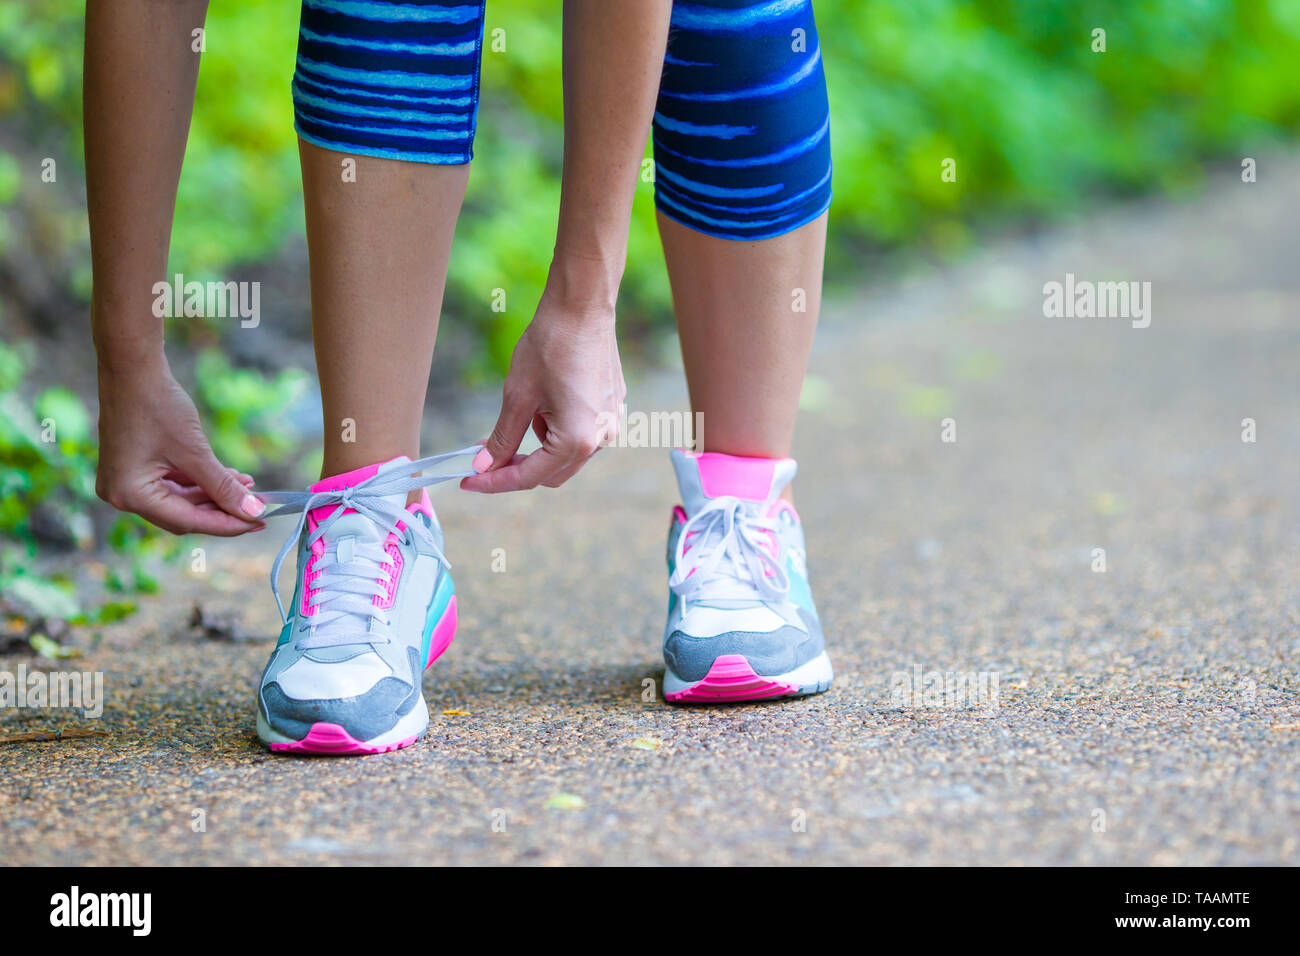 Close-up on shoe of athlete runner woman feet running on road  - Stock Image